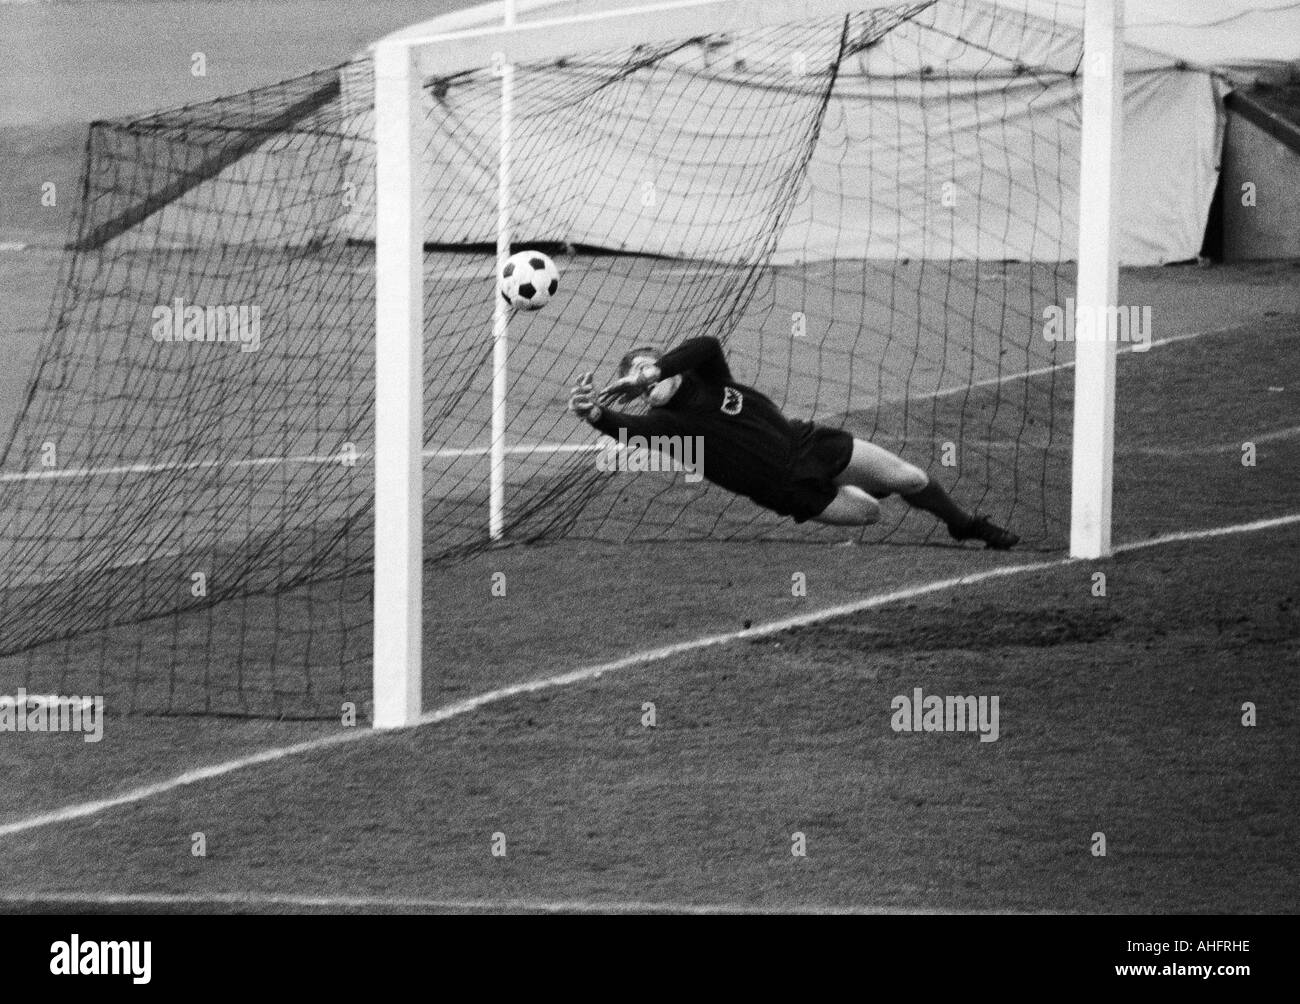 football, Regionalliga West, 1967/1968, Niederrhein Stadium in Oberhausen, Rot-Weiss Oberhausen versus Preussen Muenster 1:0, scene of the match, save by keeper Horst Bertram (Muenster) - Stock Image